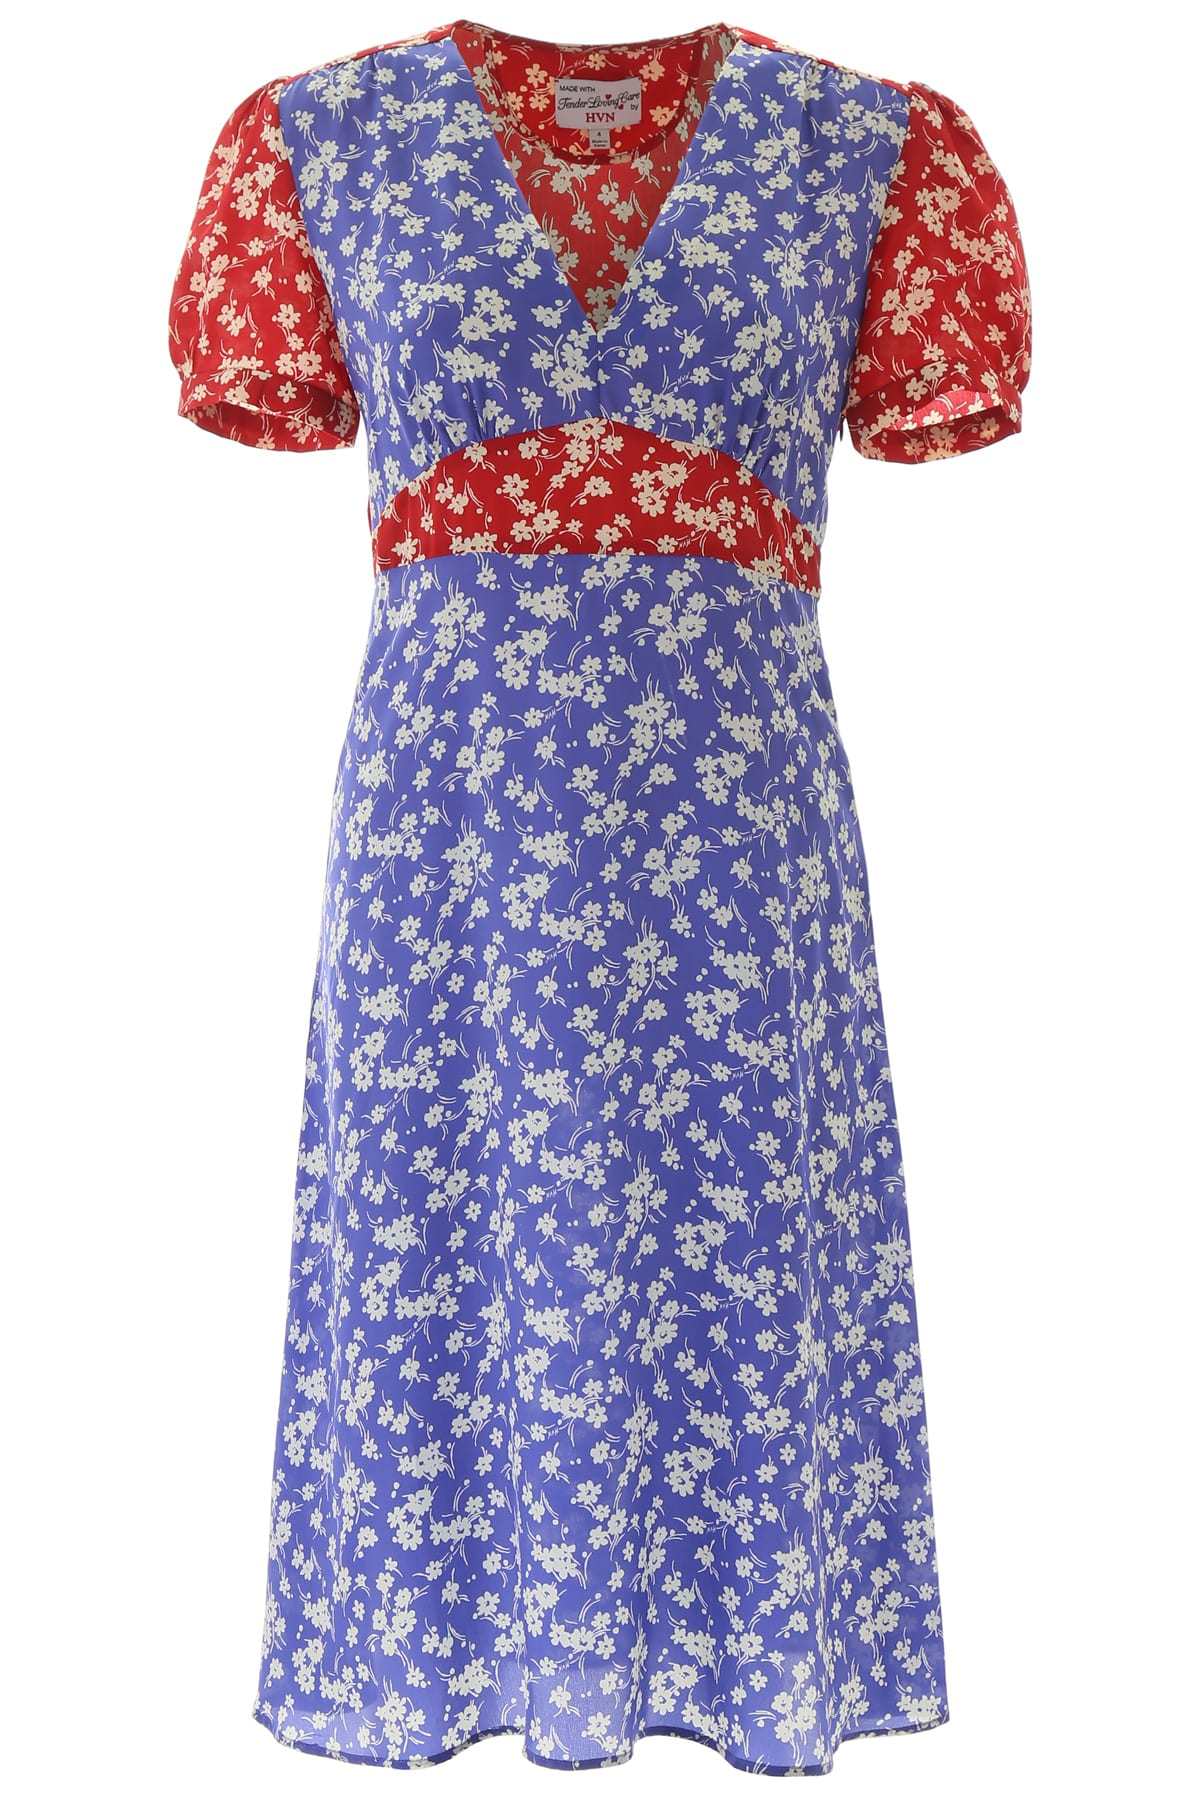 HVN Floral-printed Paula Dress